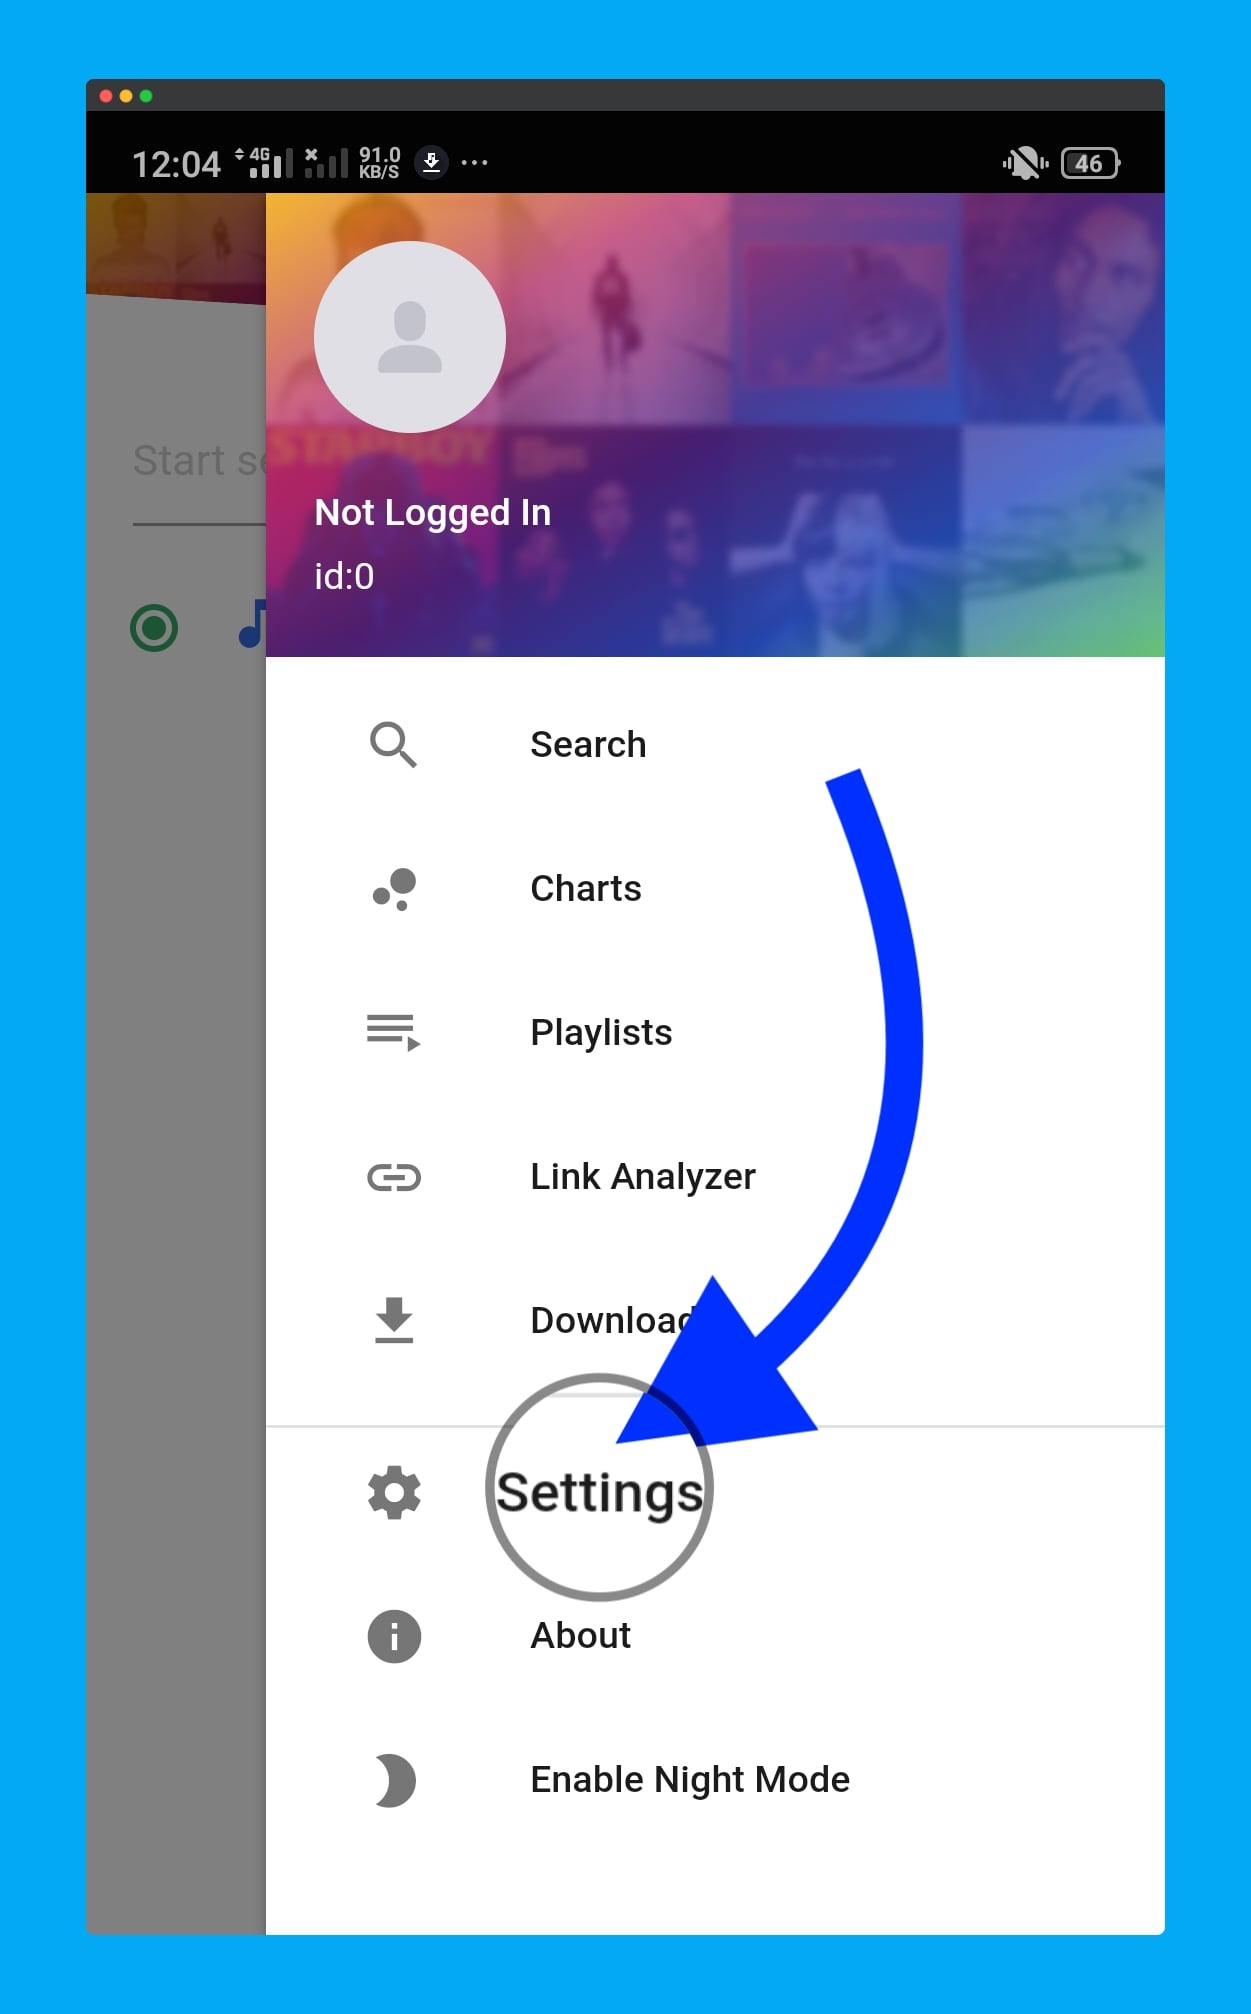 tap-on-the-Settings